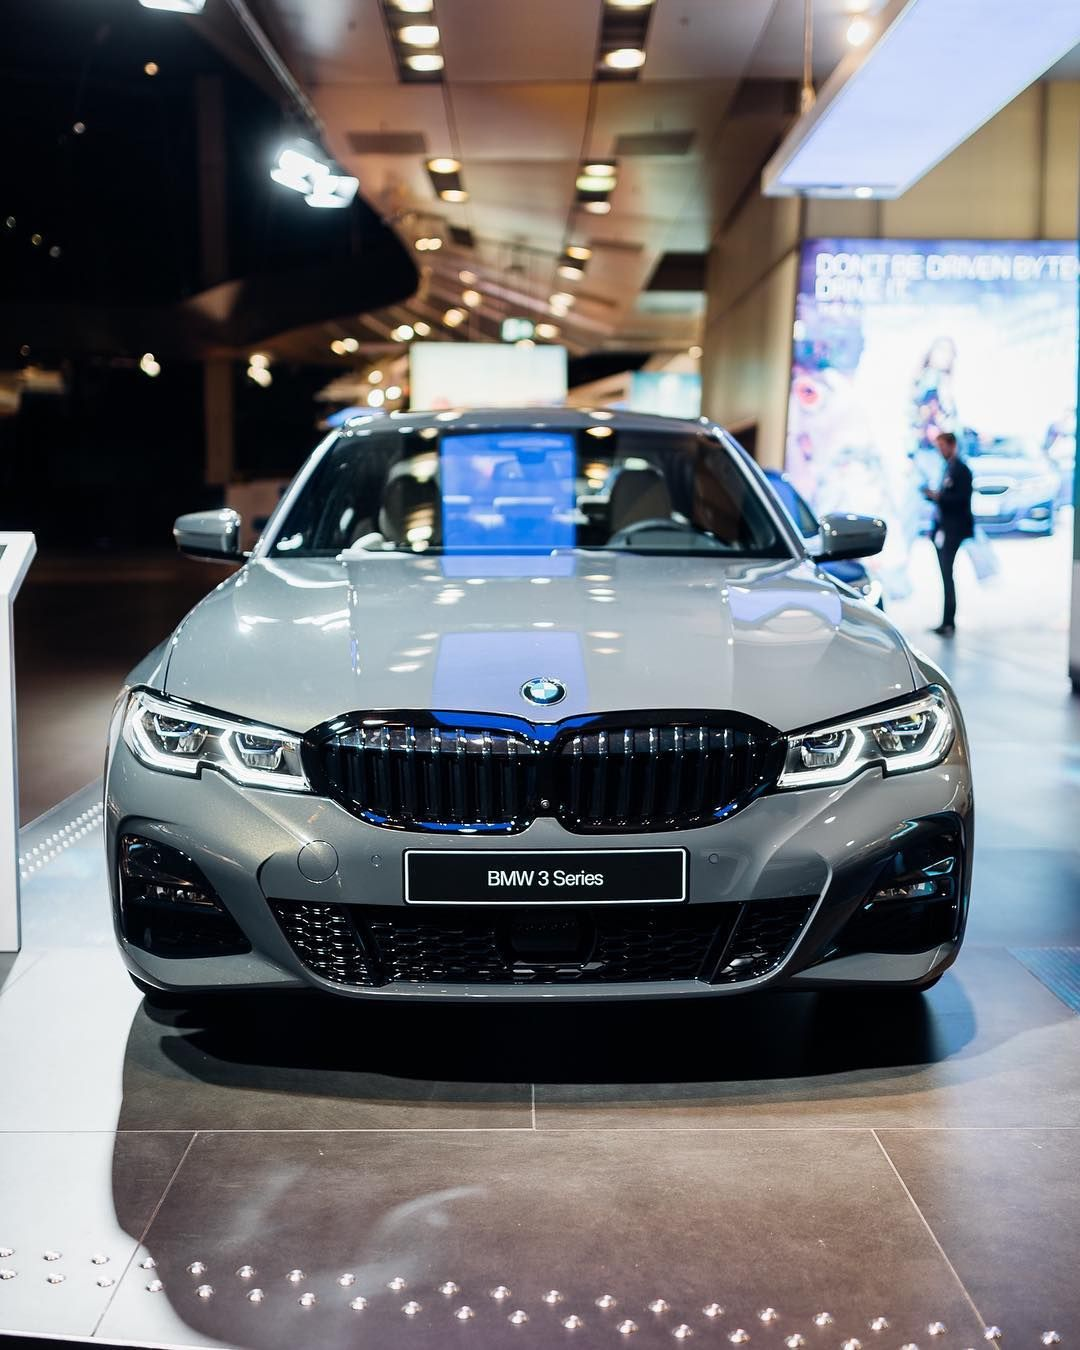 Bmw 3 Series 2019 Dravit Grey